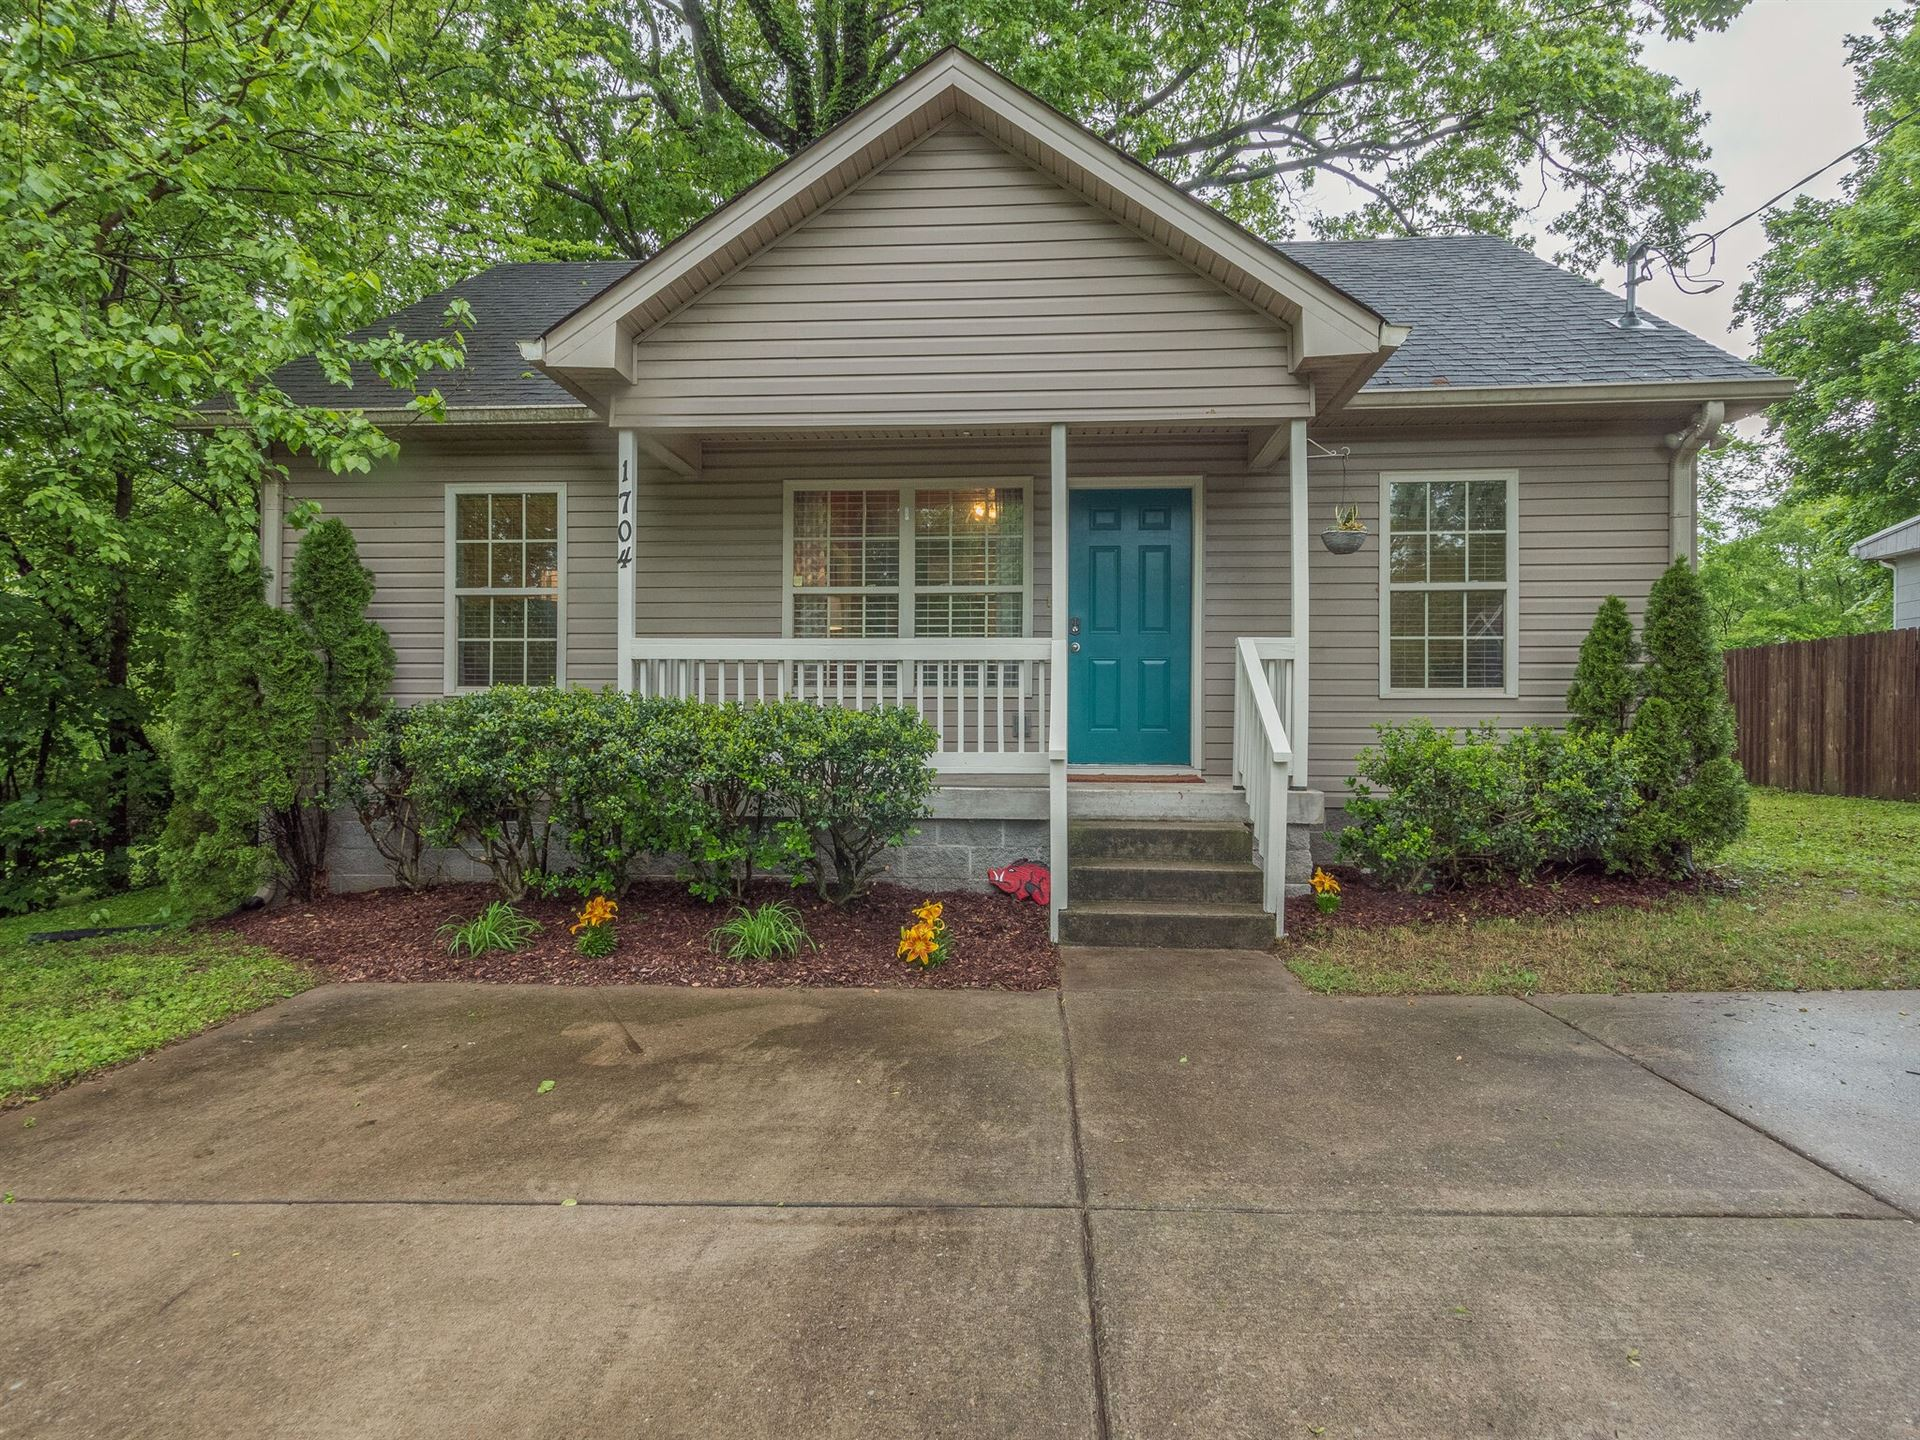 1704 Northview Ave, Nashville, TN 37216 - MLS#: 2250150